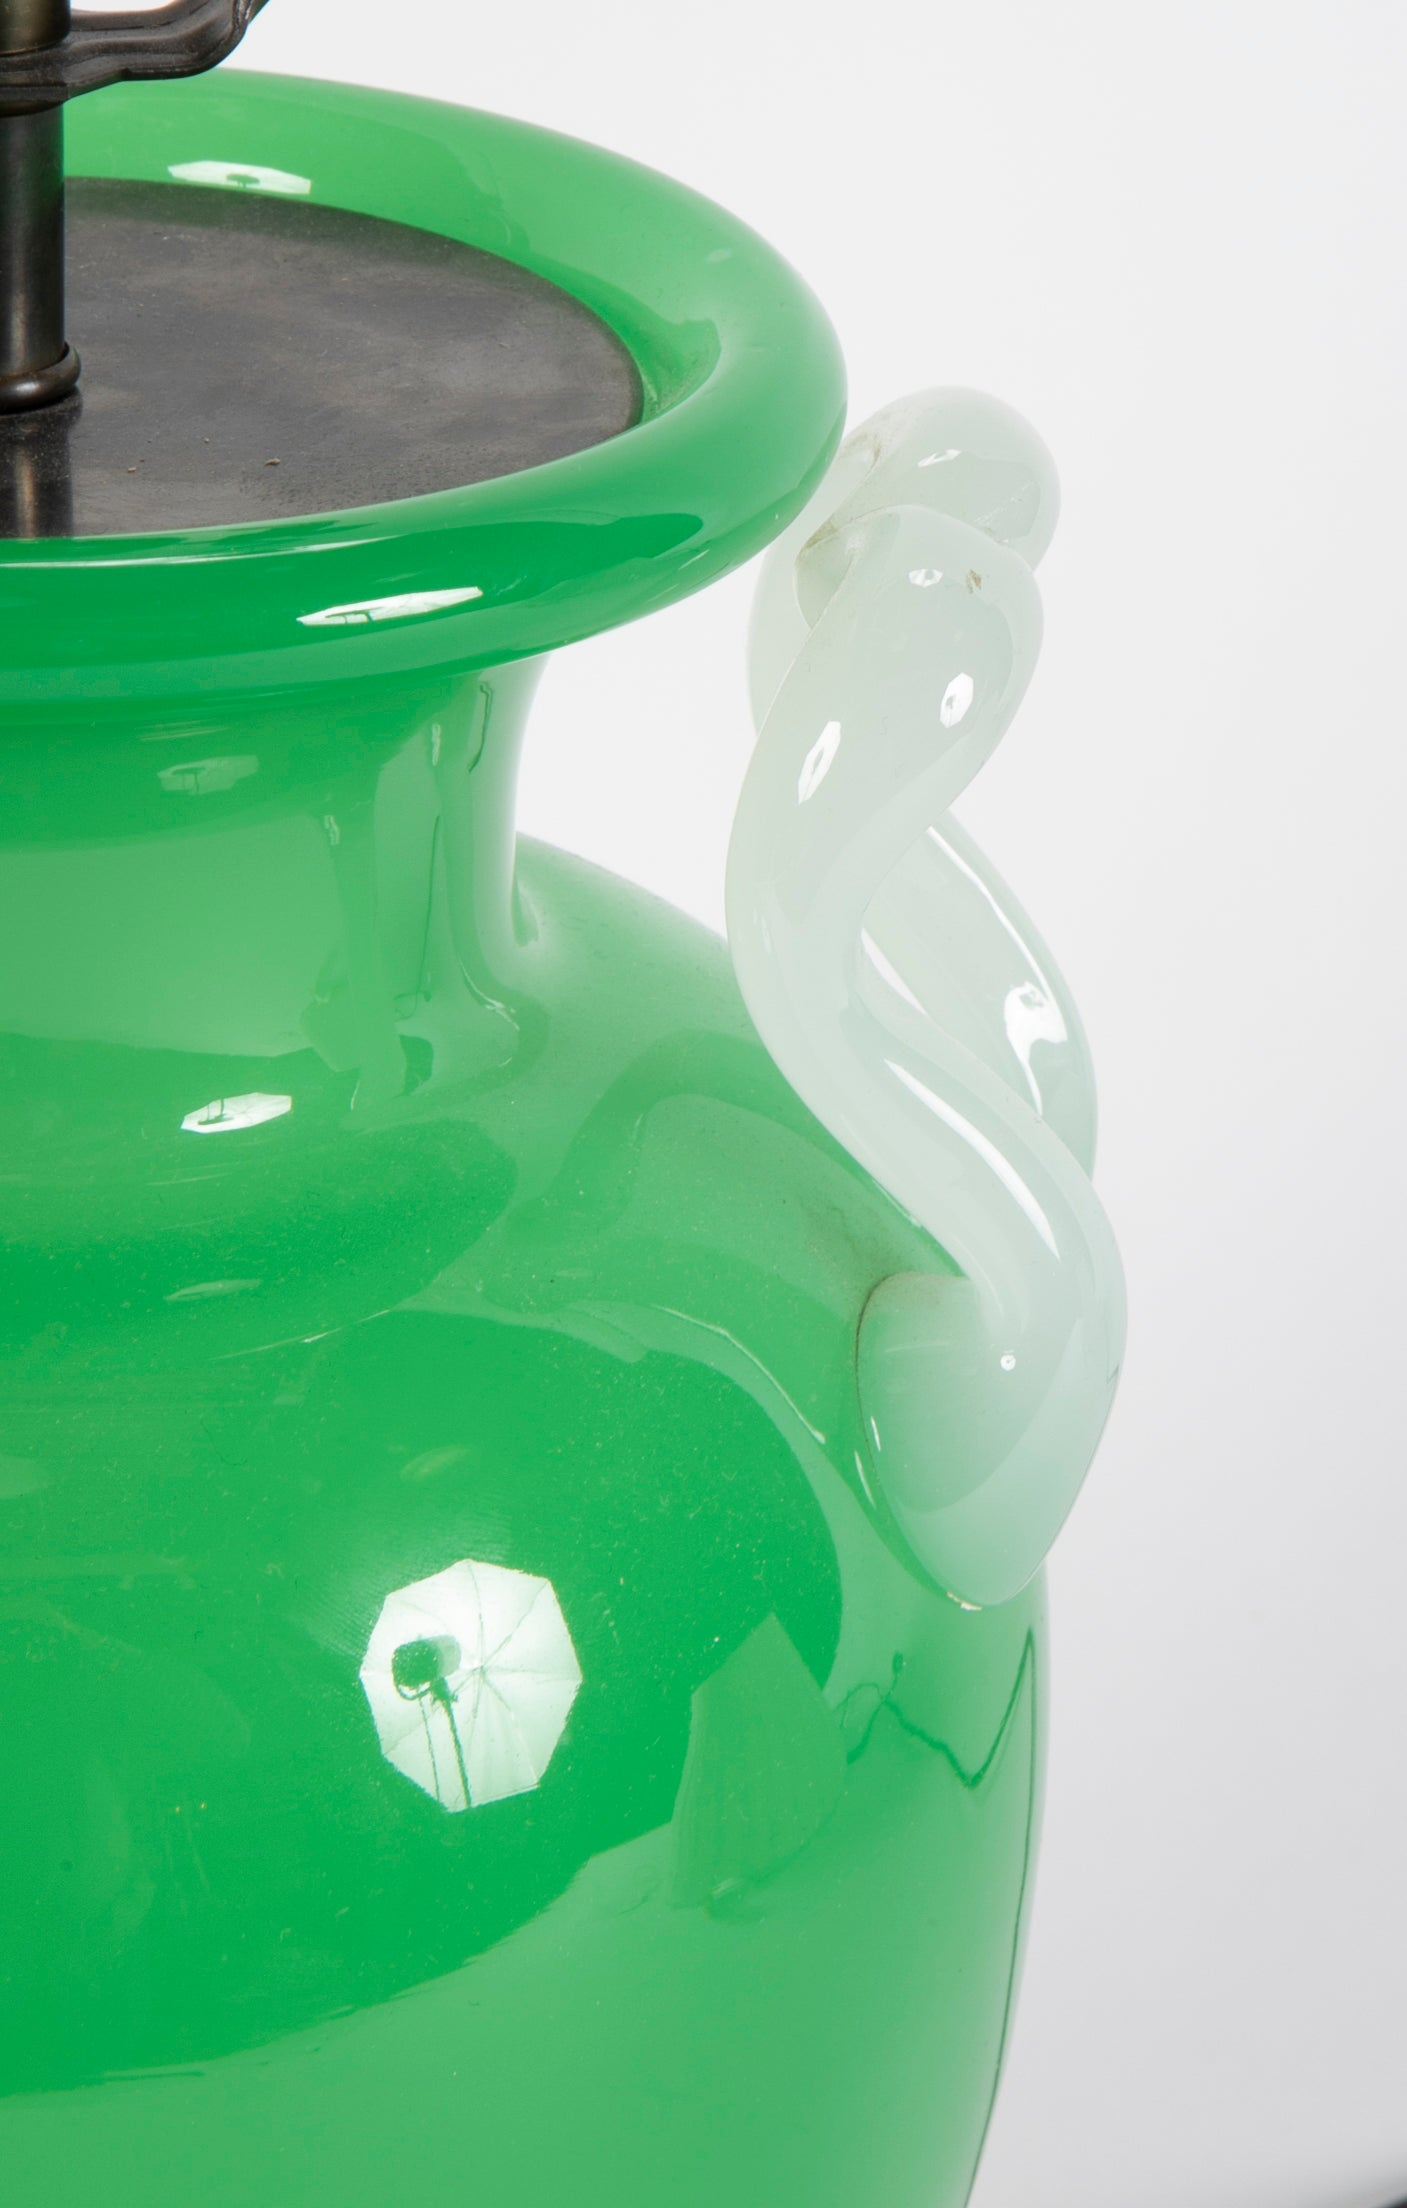 Steuben Glass Vase now a Table Lamp